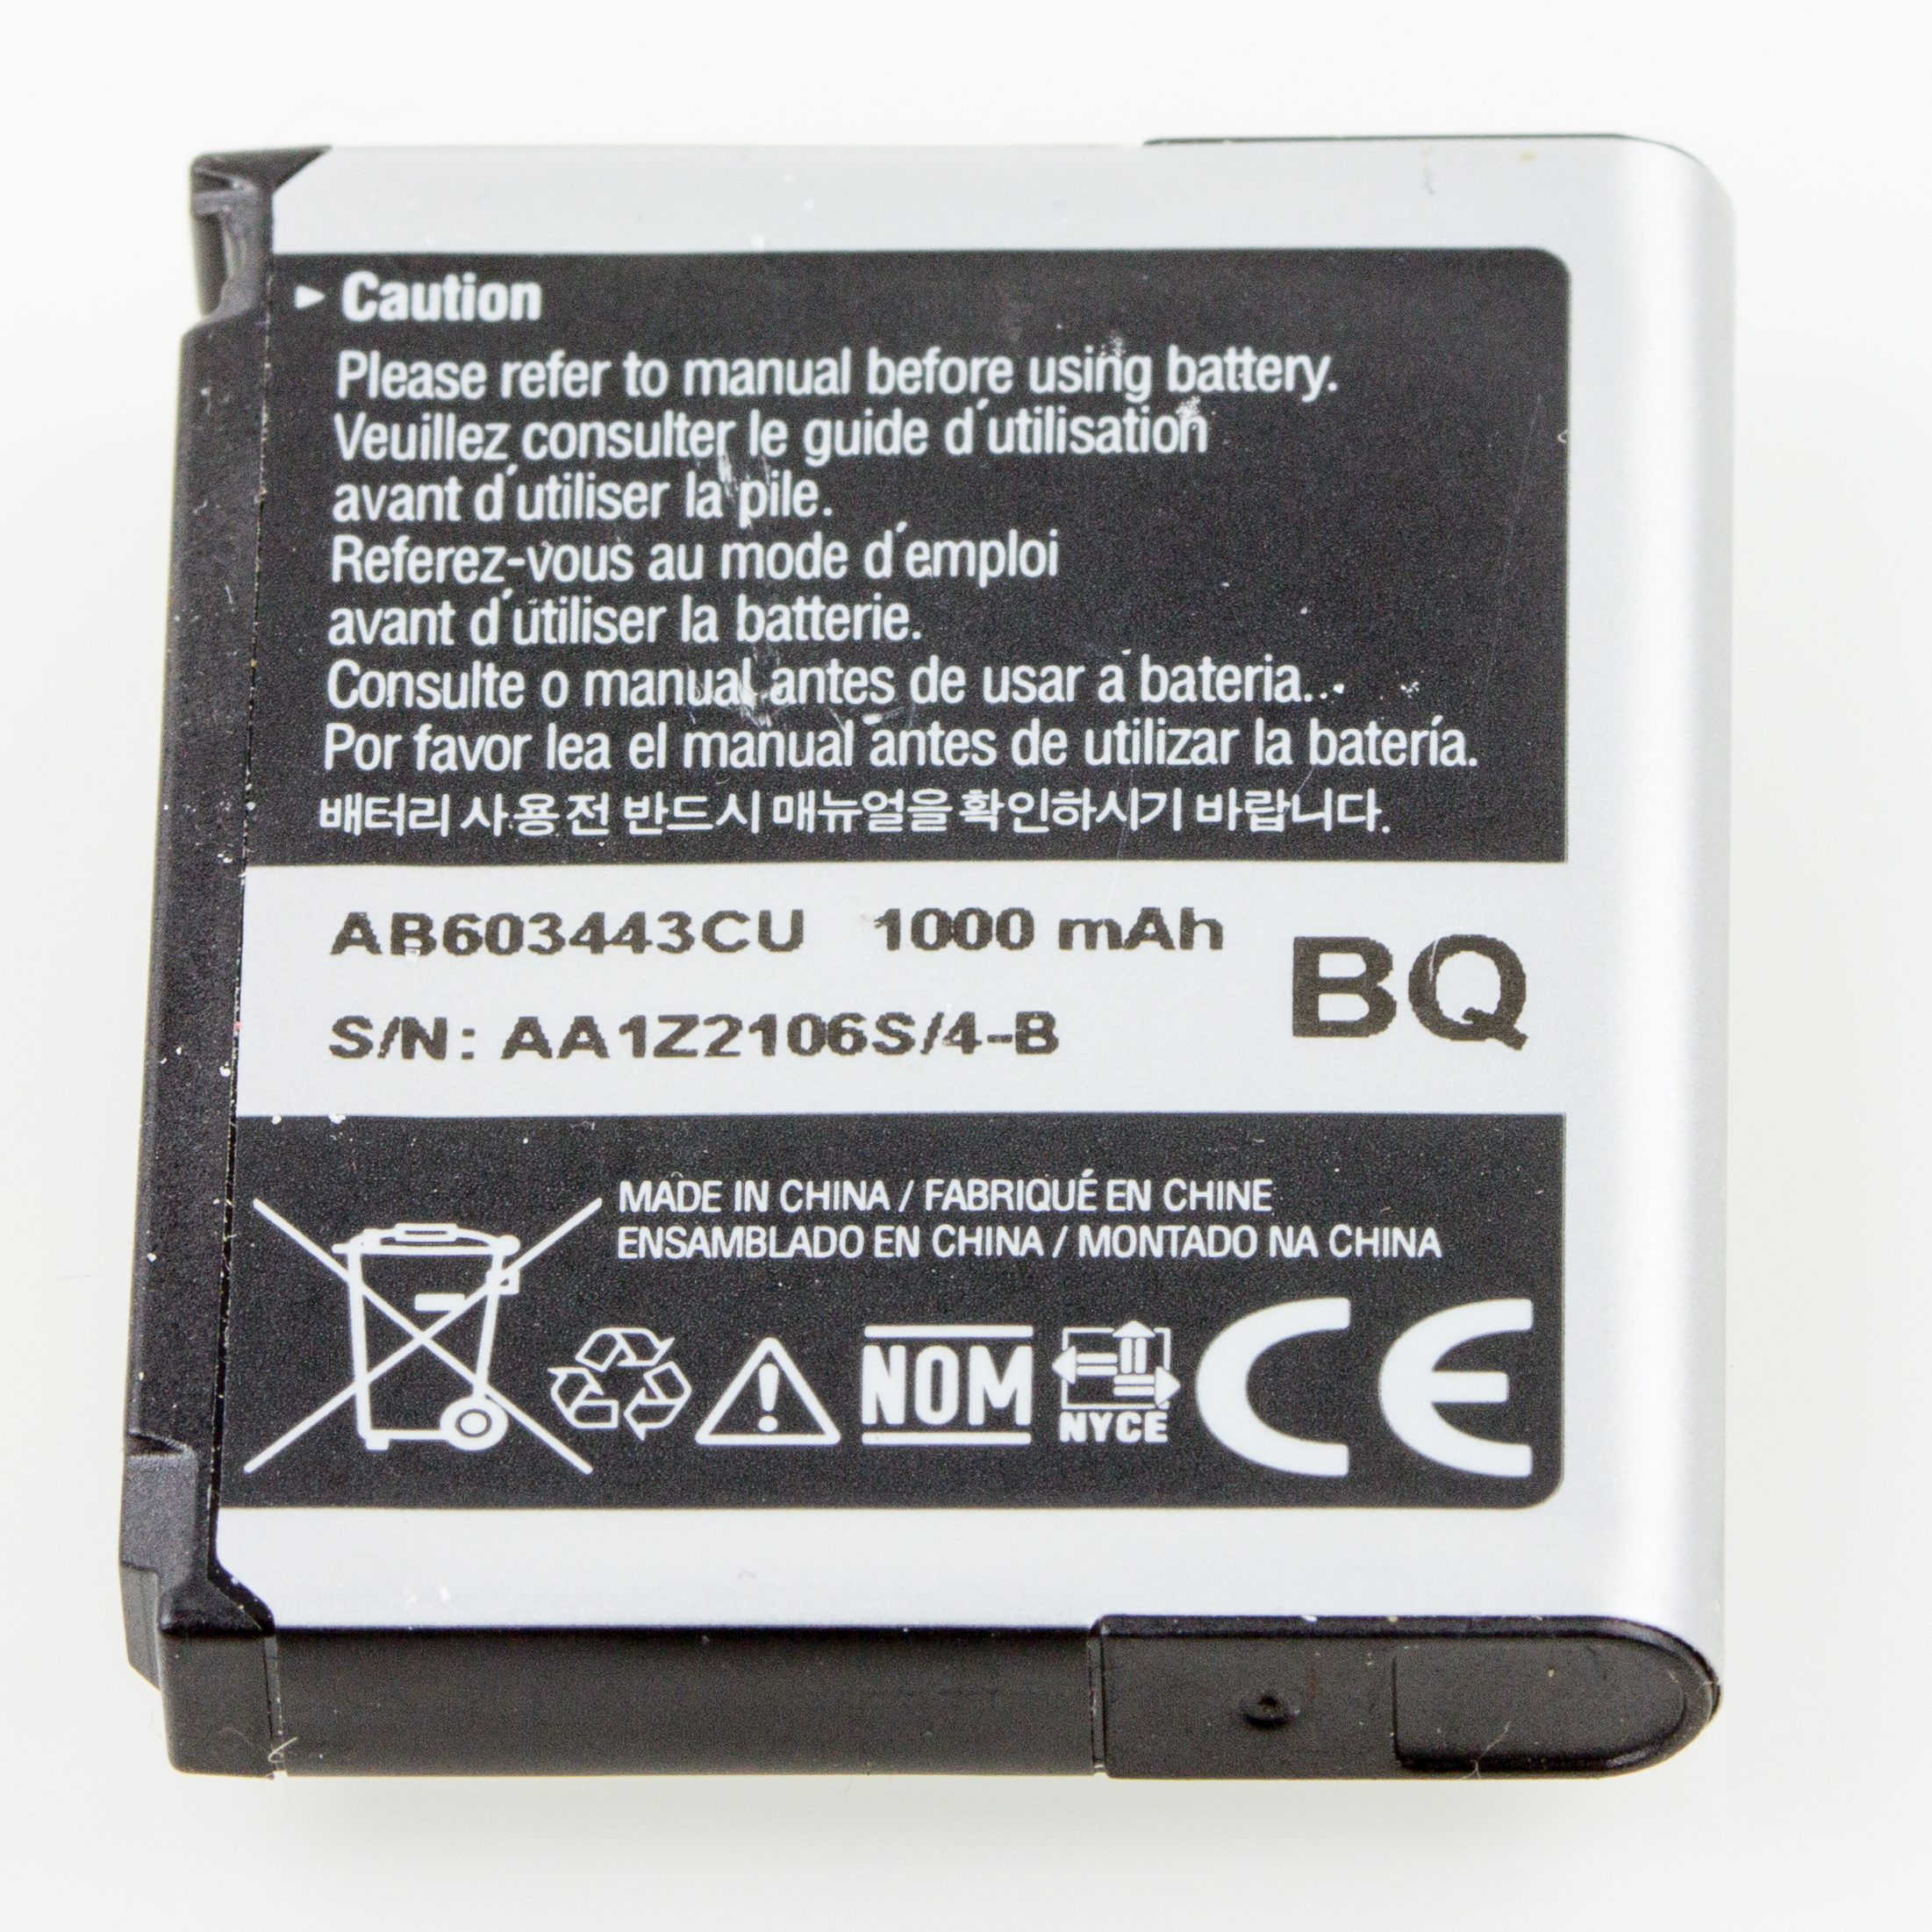 File:Samsung GT-S5230 - Li-ion Battery AB603443CU-9999.jpg